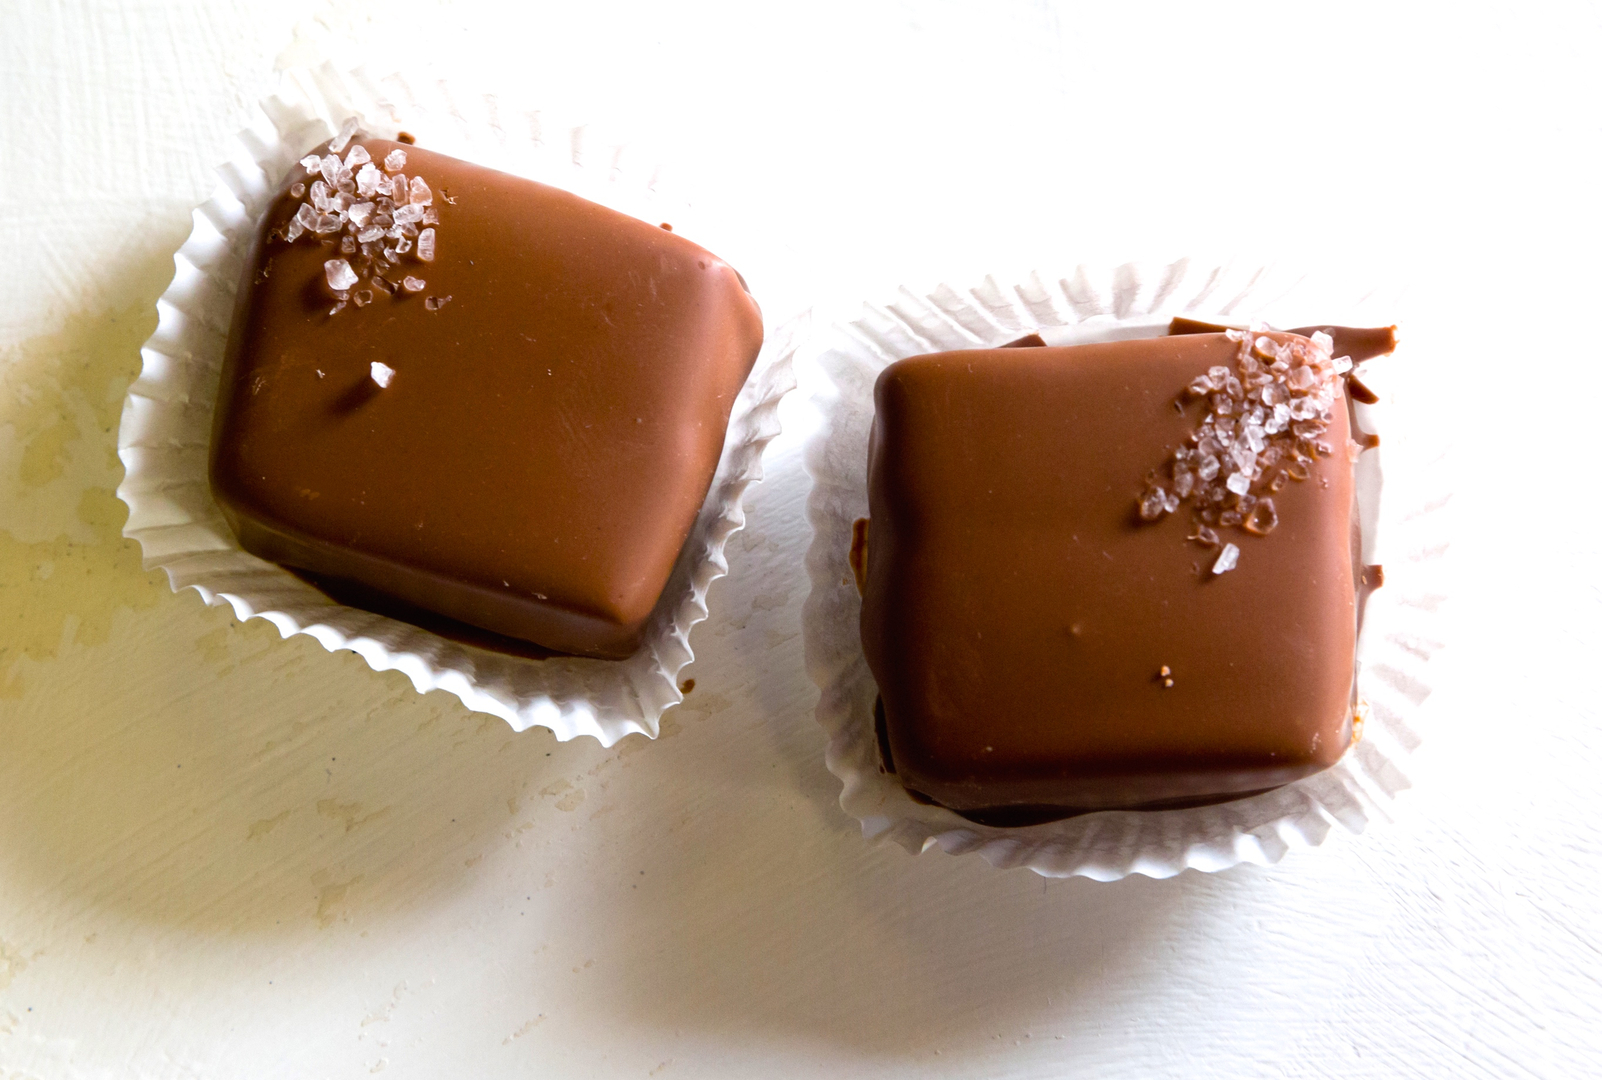 Dark Chocolate Sea Salt Caramel Truffles at the Chocolate Cow in Sonoma